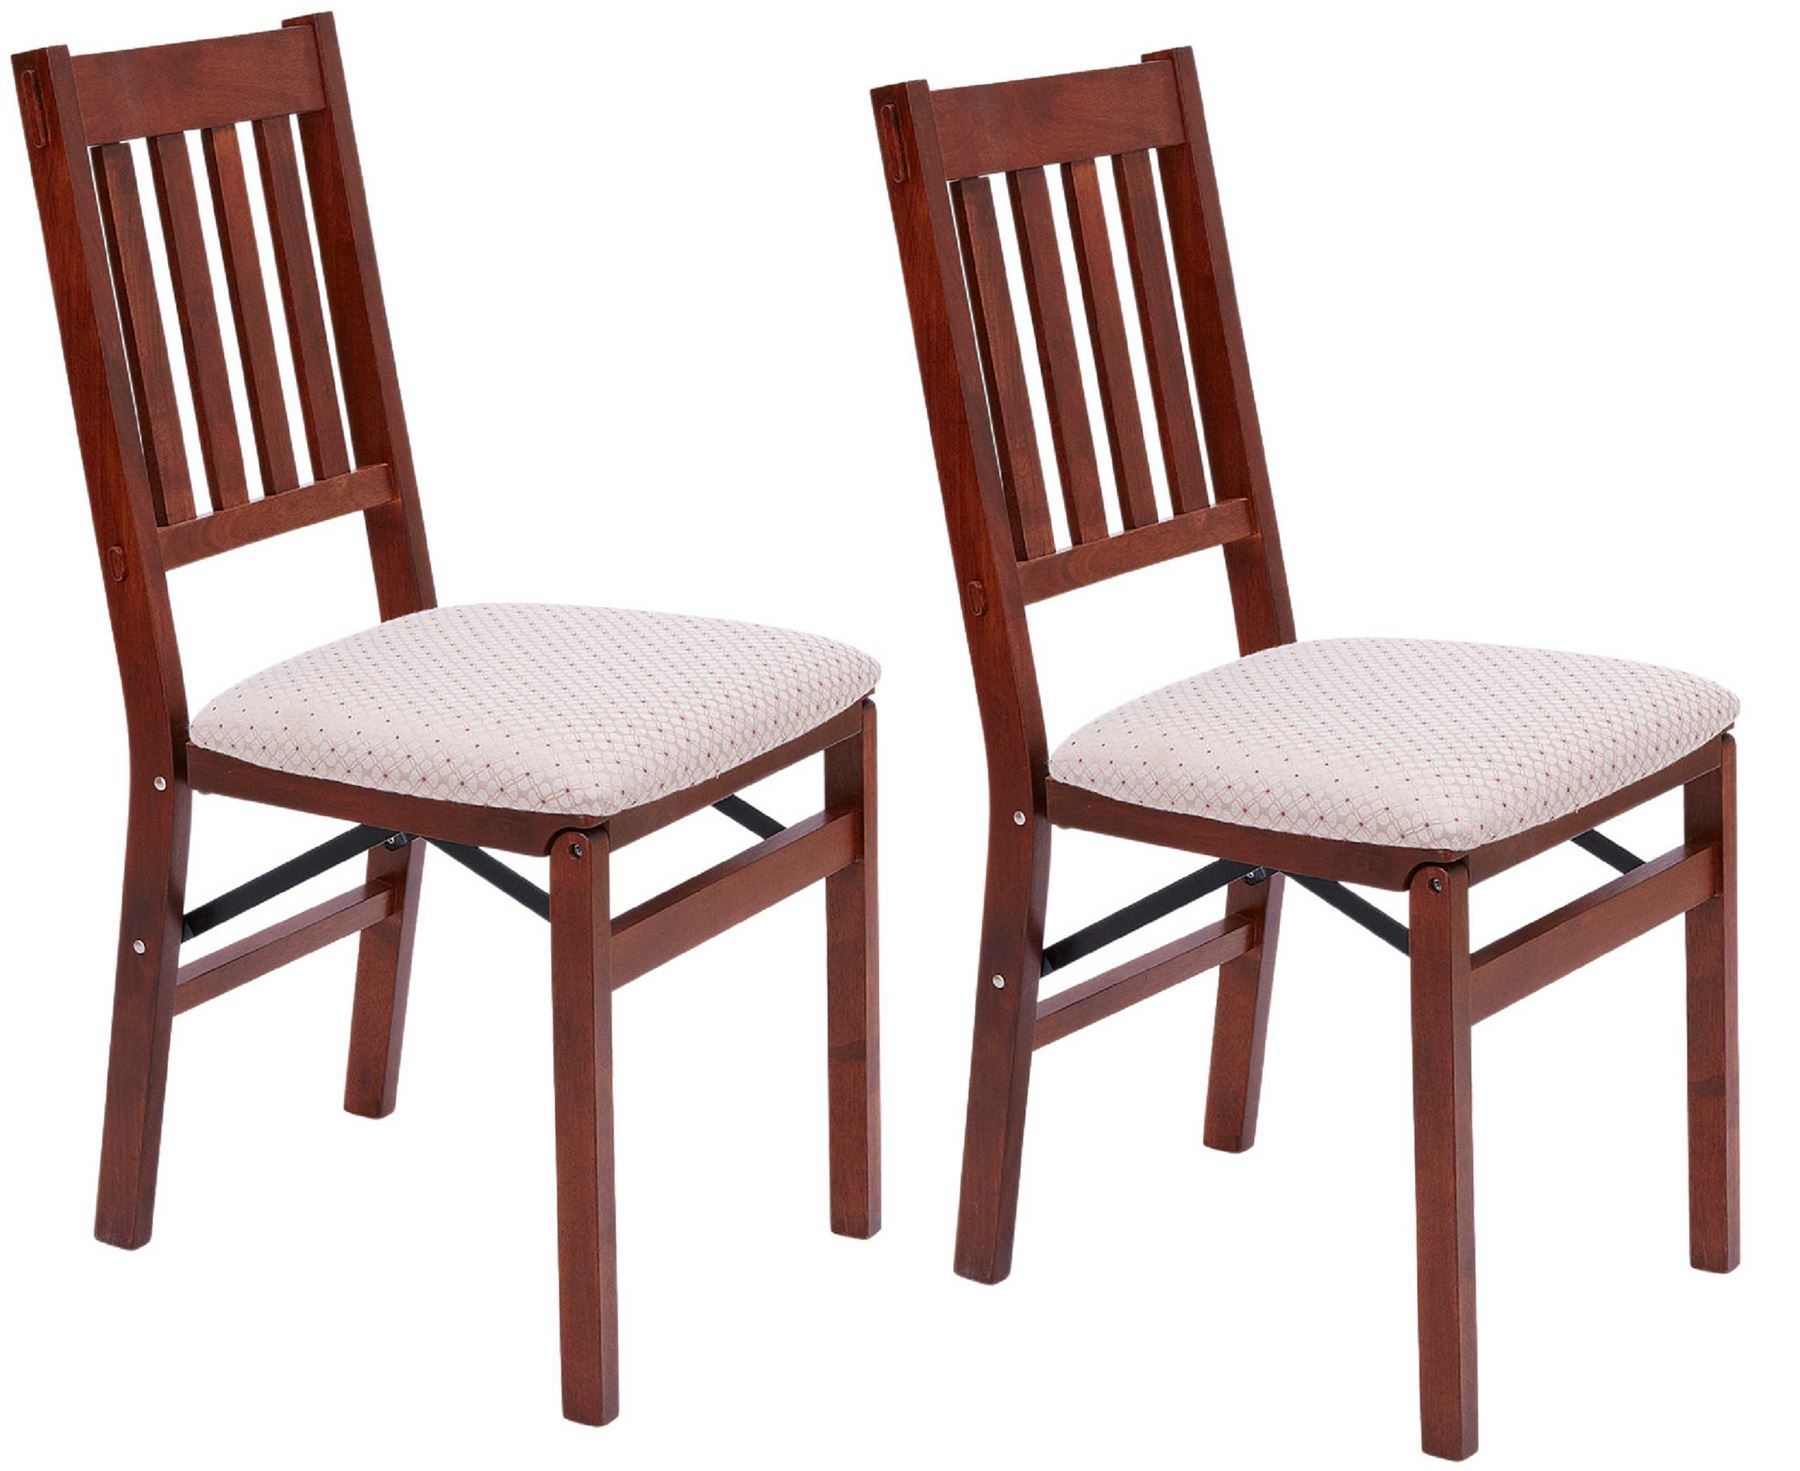 Foldable Dining Chairs Details About Arts And Crafts Folding Dining Chairs 2x Solid Hardwood Frame Cushioned Seat Pad